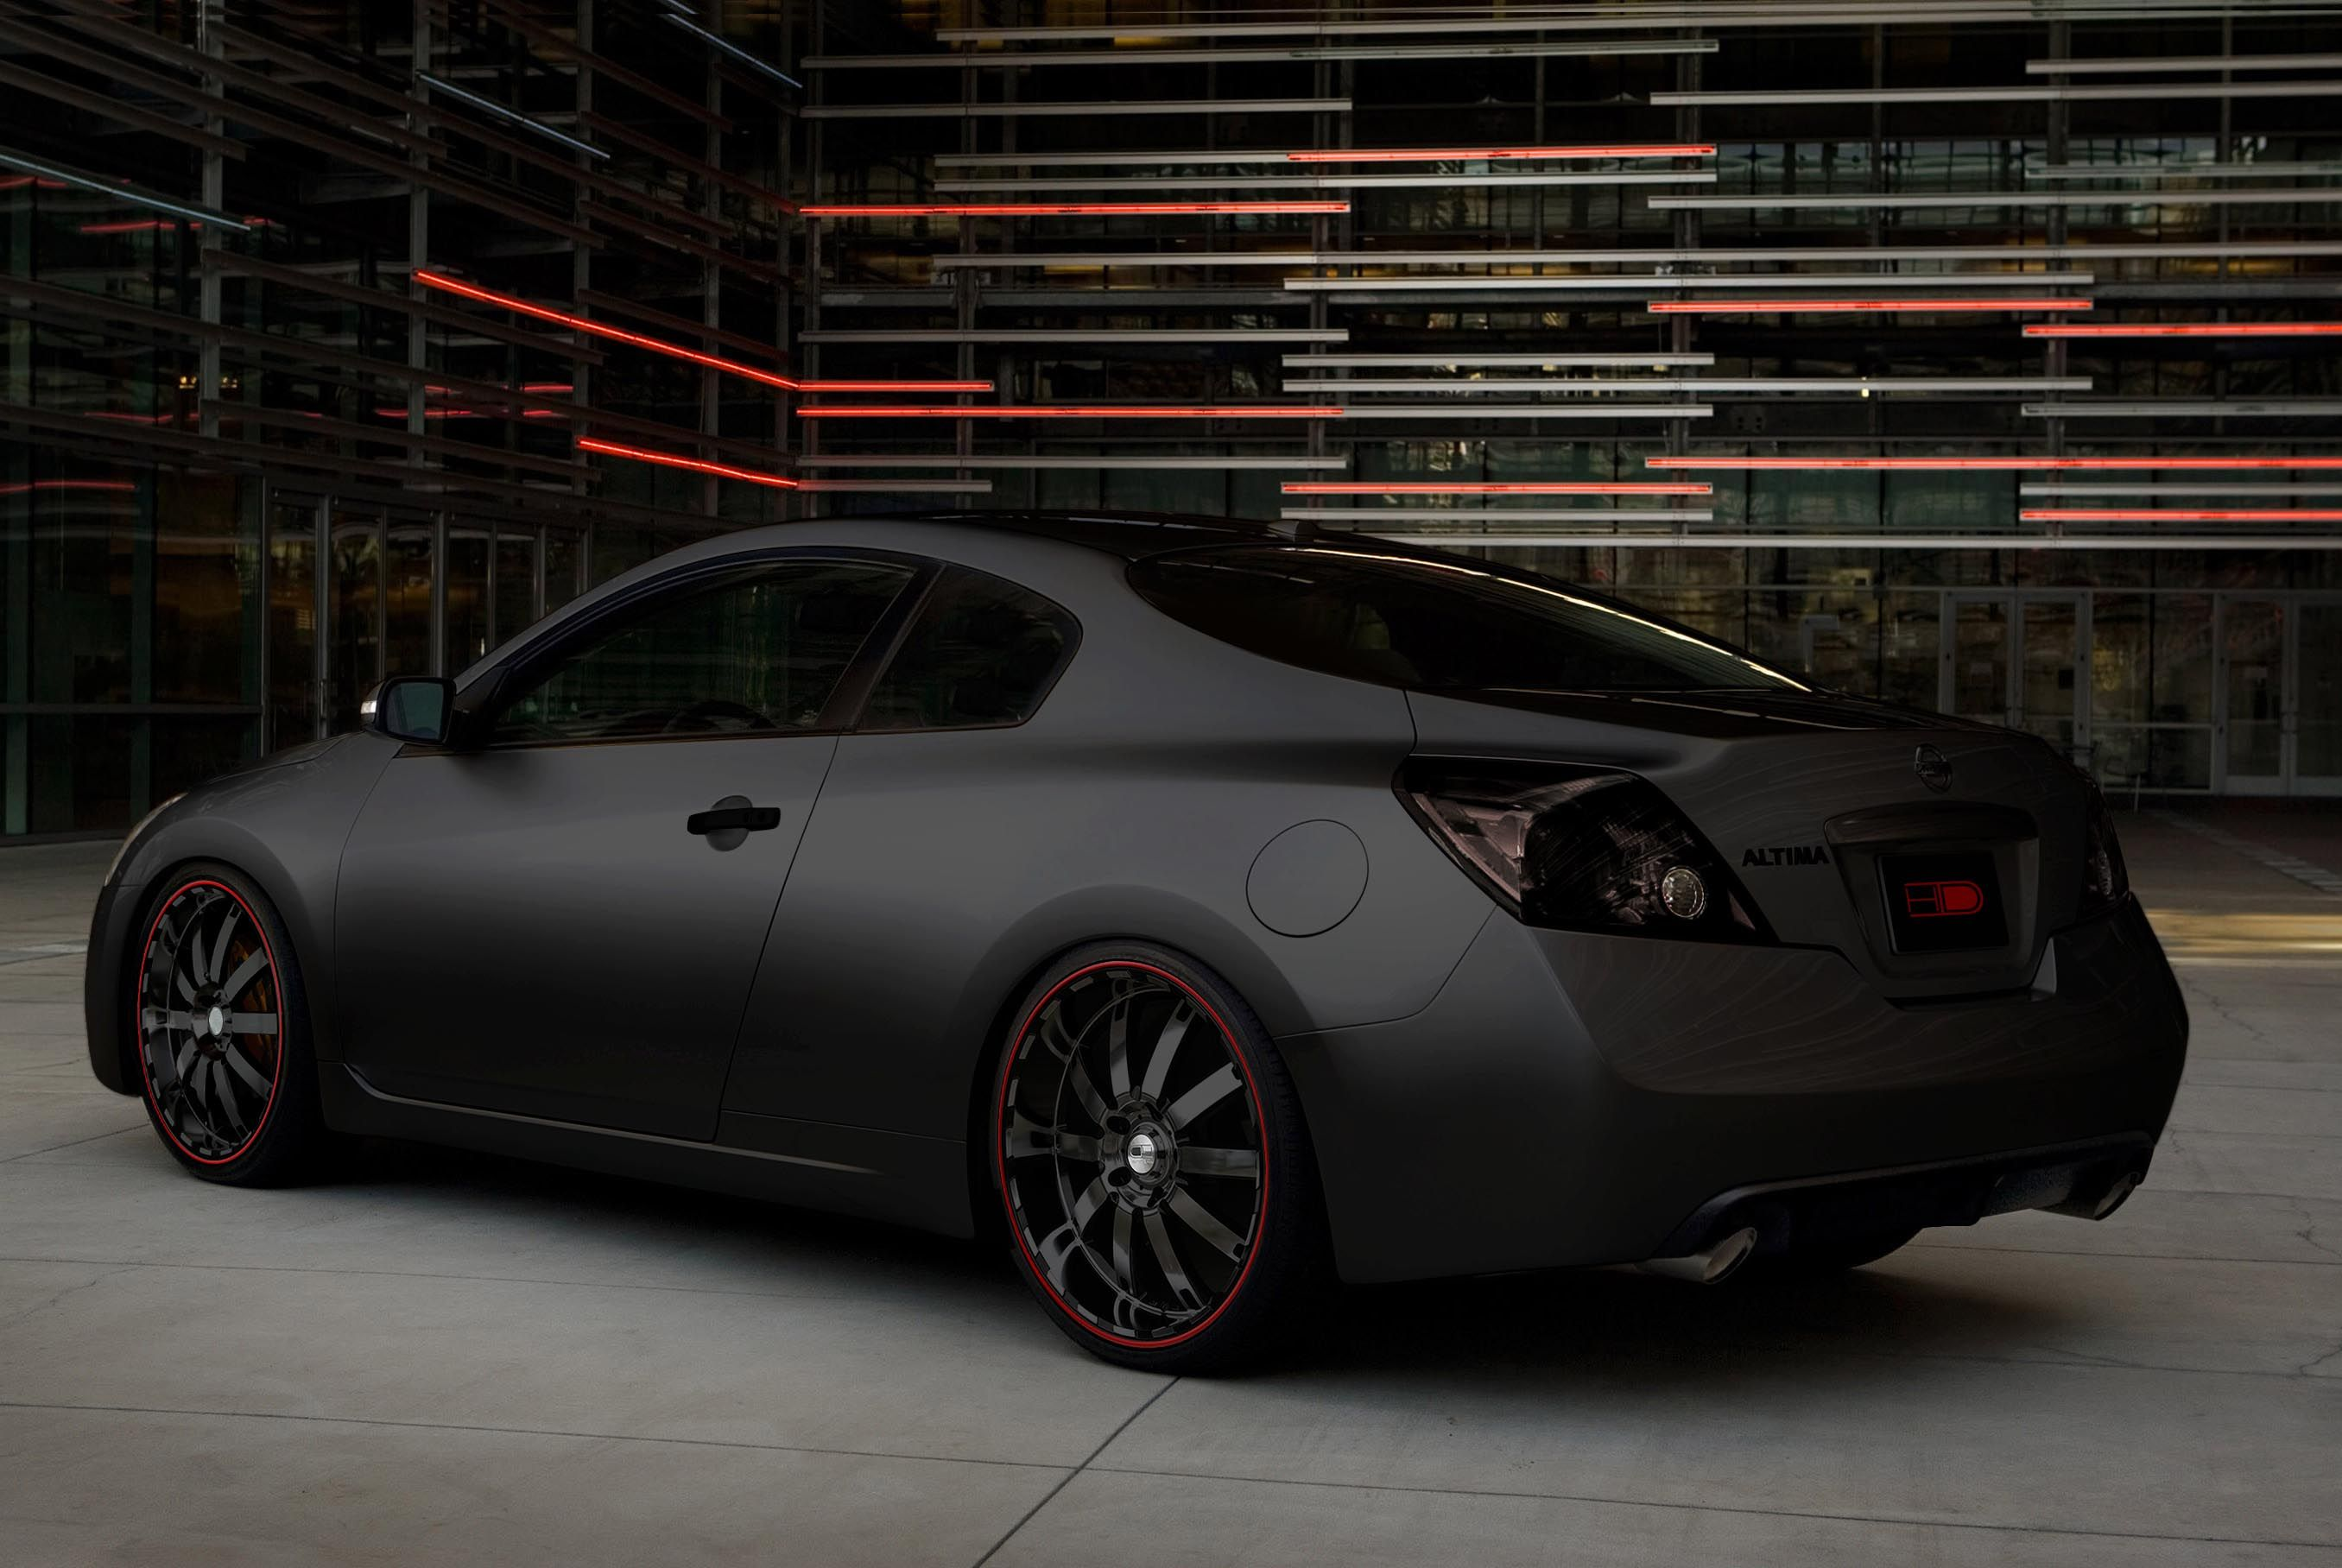 Not Crazy About The Rims But That Flat Black Paint Job Hnnnnnnng Nissan Altima Nissan Altima Coupe Nissan Coupe